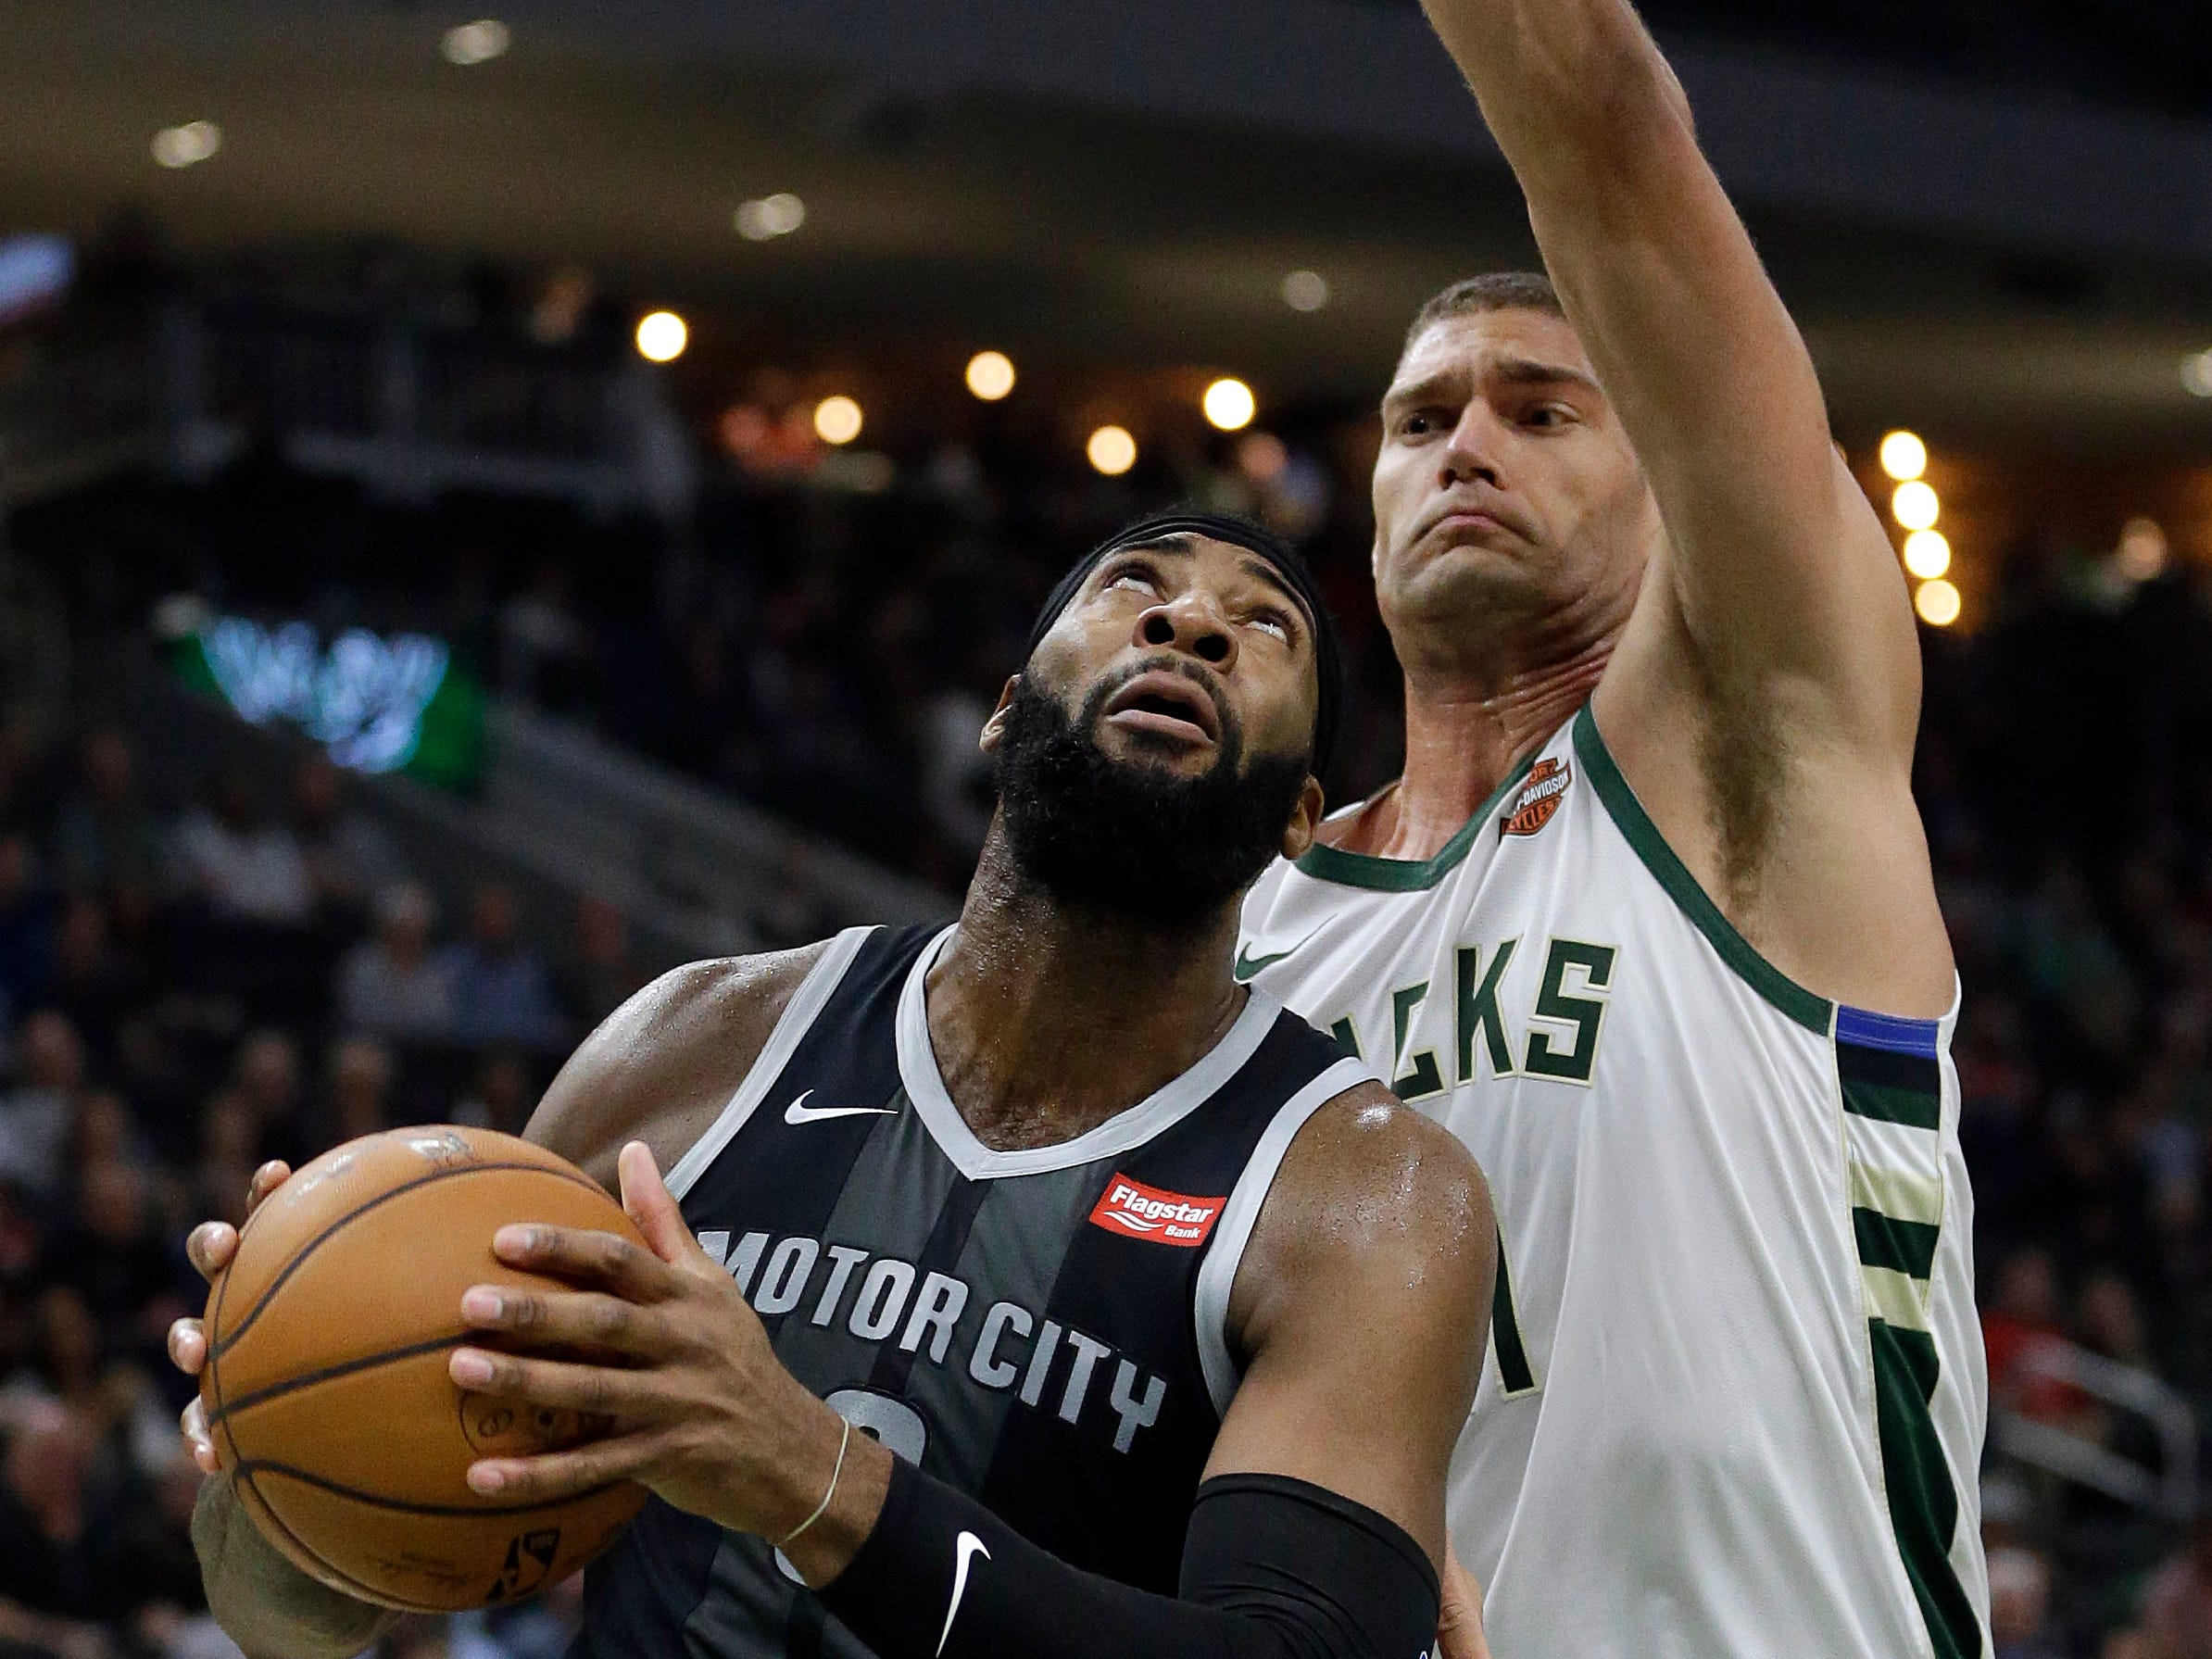 Detroit Pistons' Andre Drummond drives against Milwaukee Bucks' Brook Lopez during the first half Wednesday, Dec. 5, 2018, in Milwaukee.